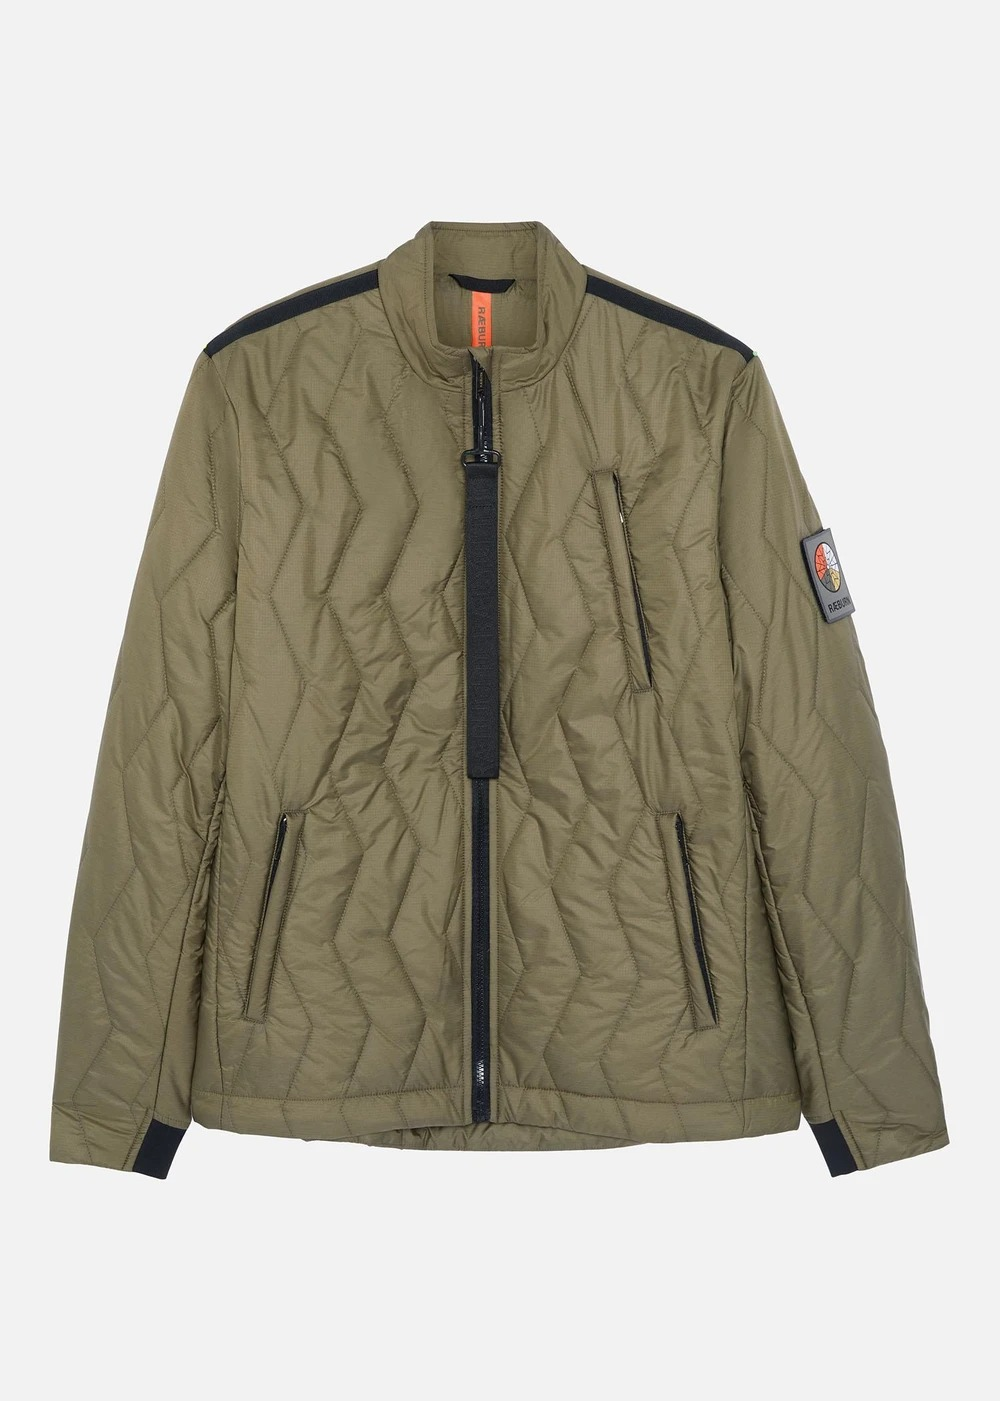 Christopher Raeburn SI Quilted Jacket